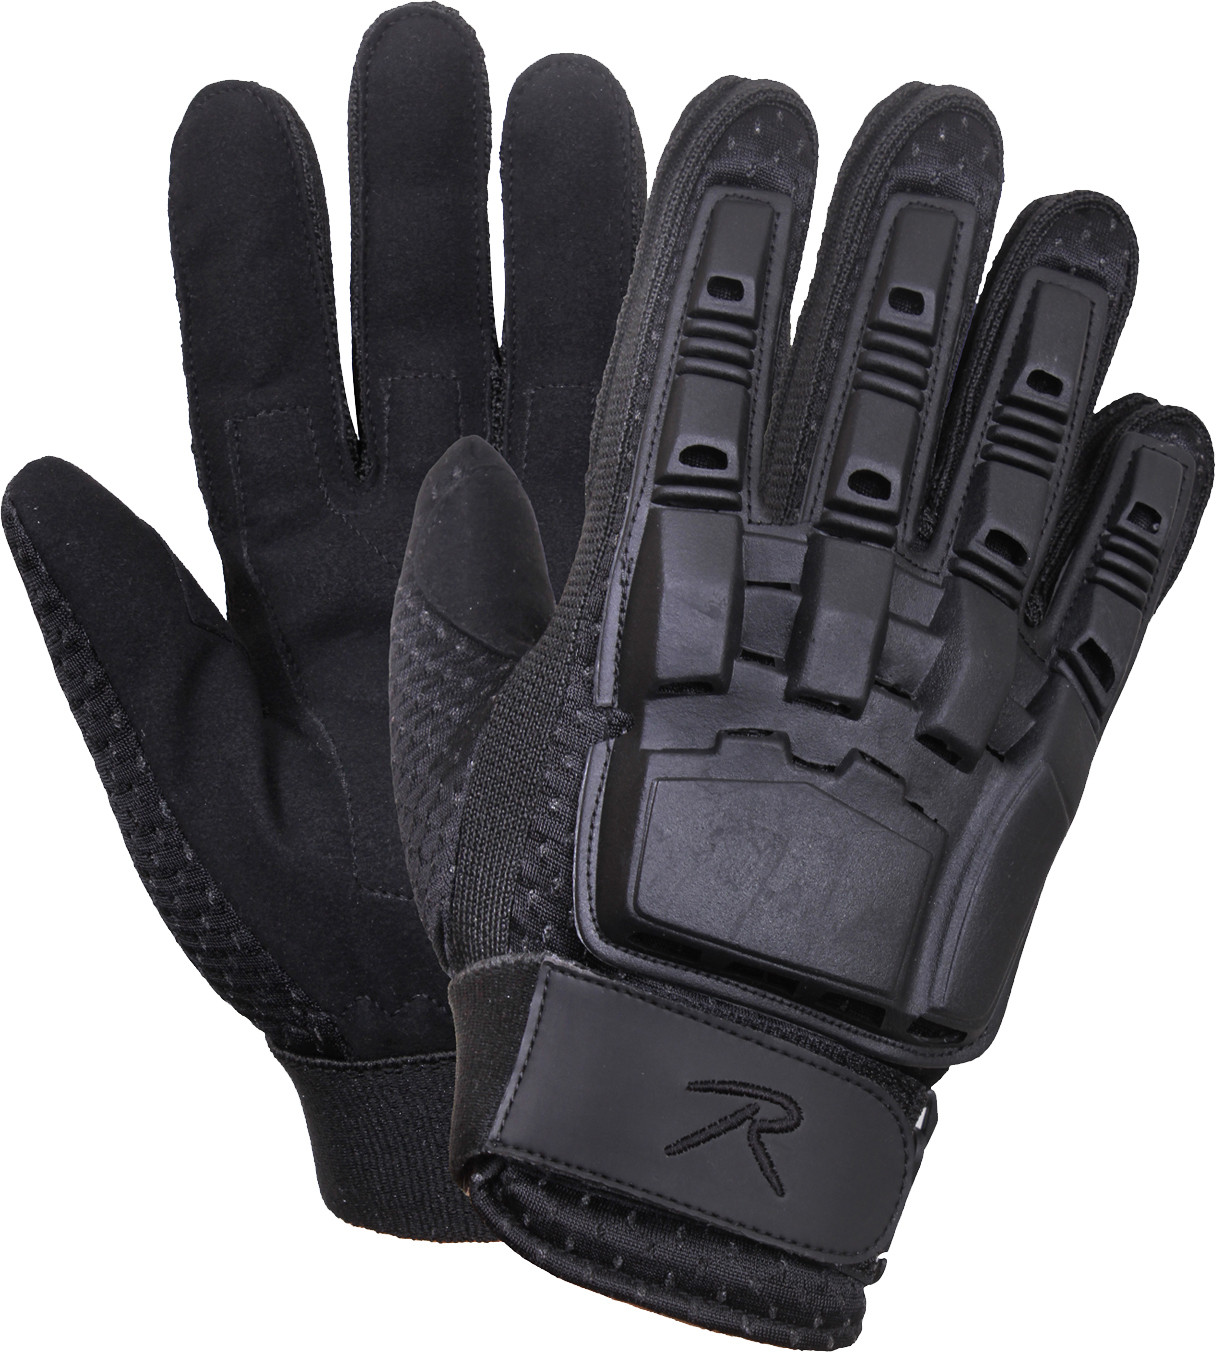 Black Military Armored Hard Back Tactical Duty Assault Gloves cad46977f34